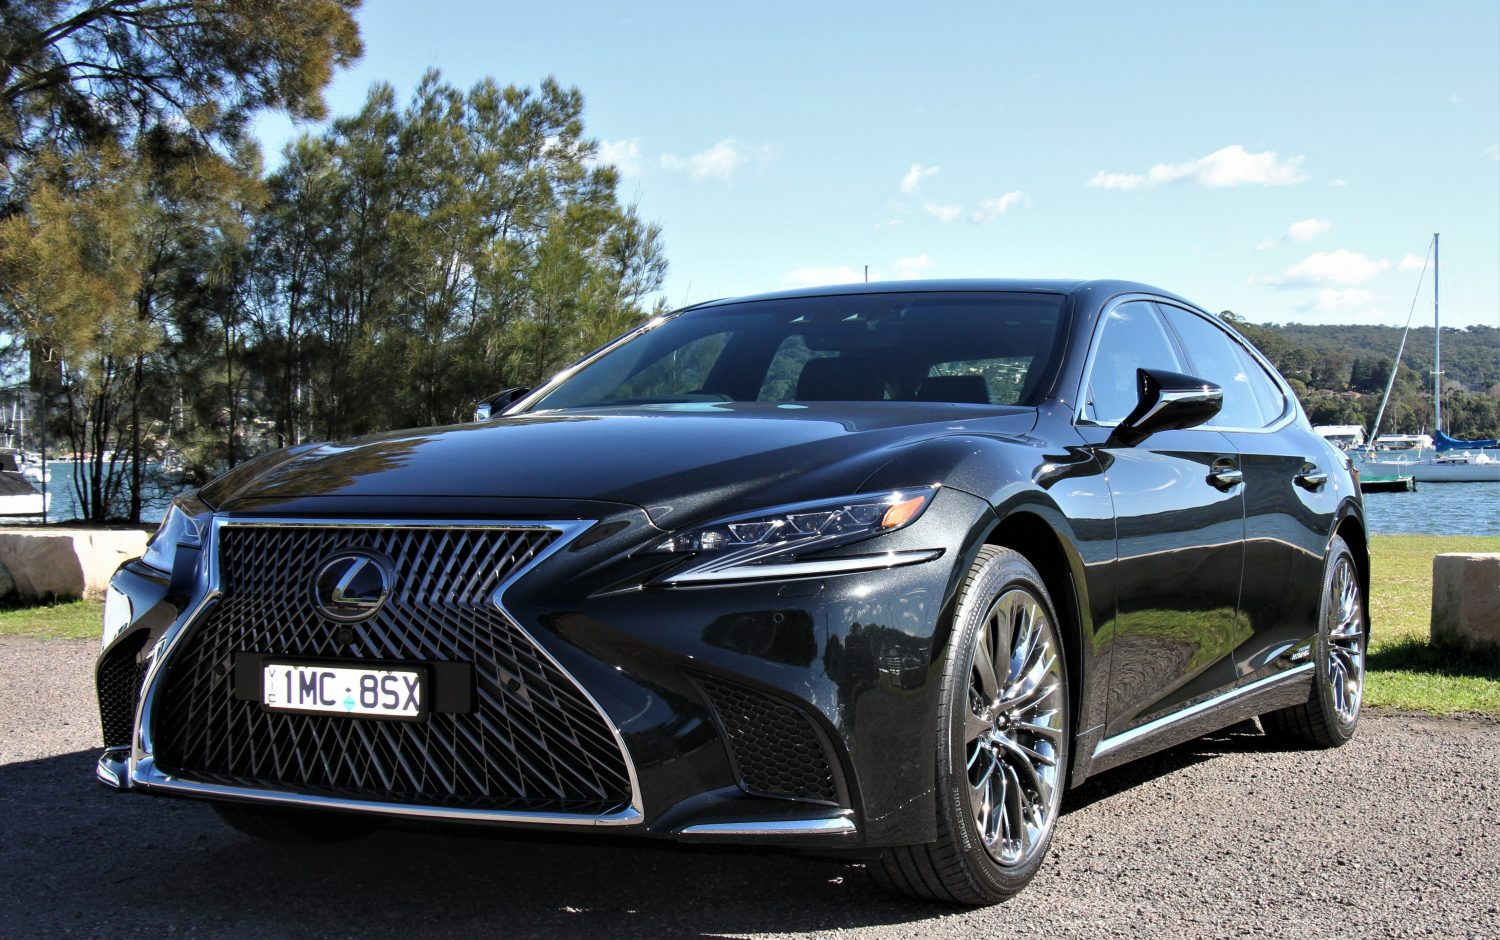 Auto Review: 2019 Lexus LS 500h Sports Luxury (hybrid)